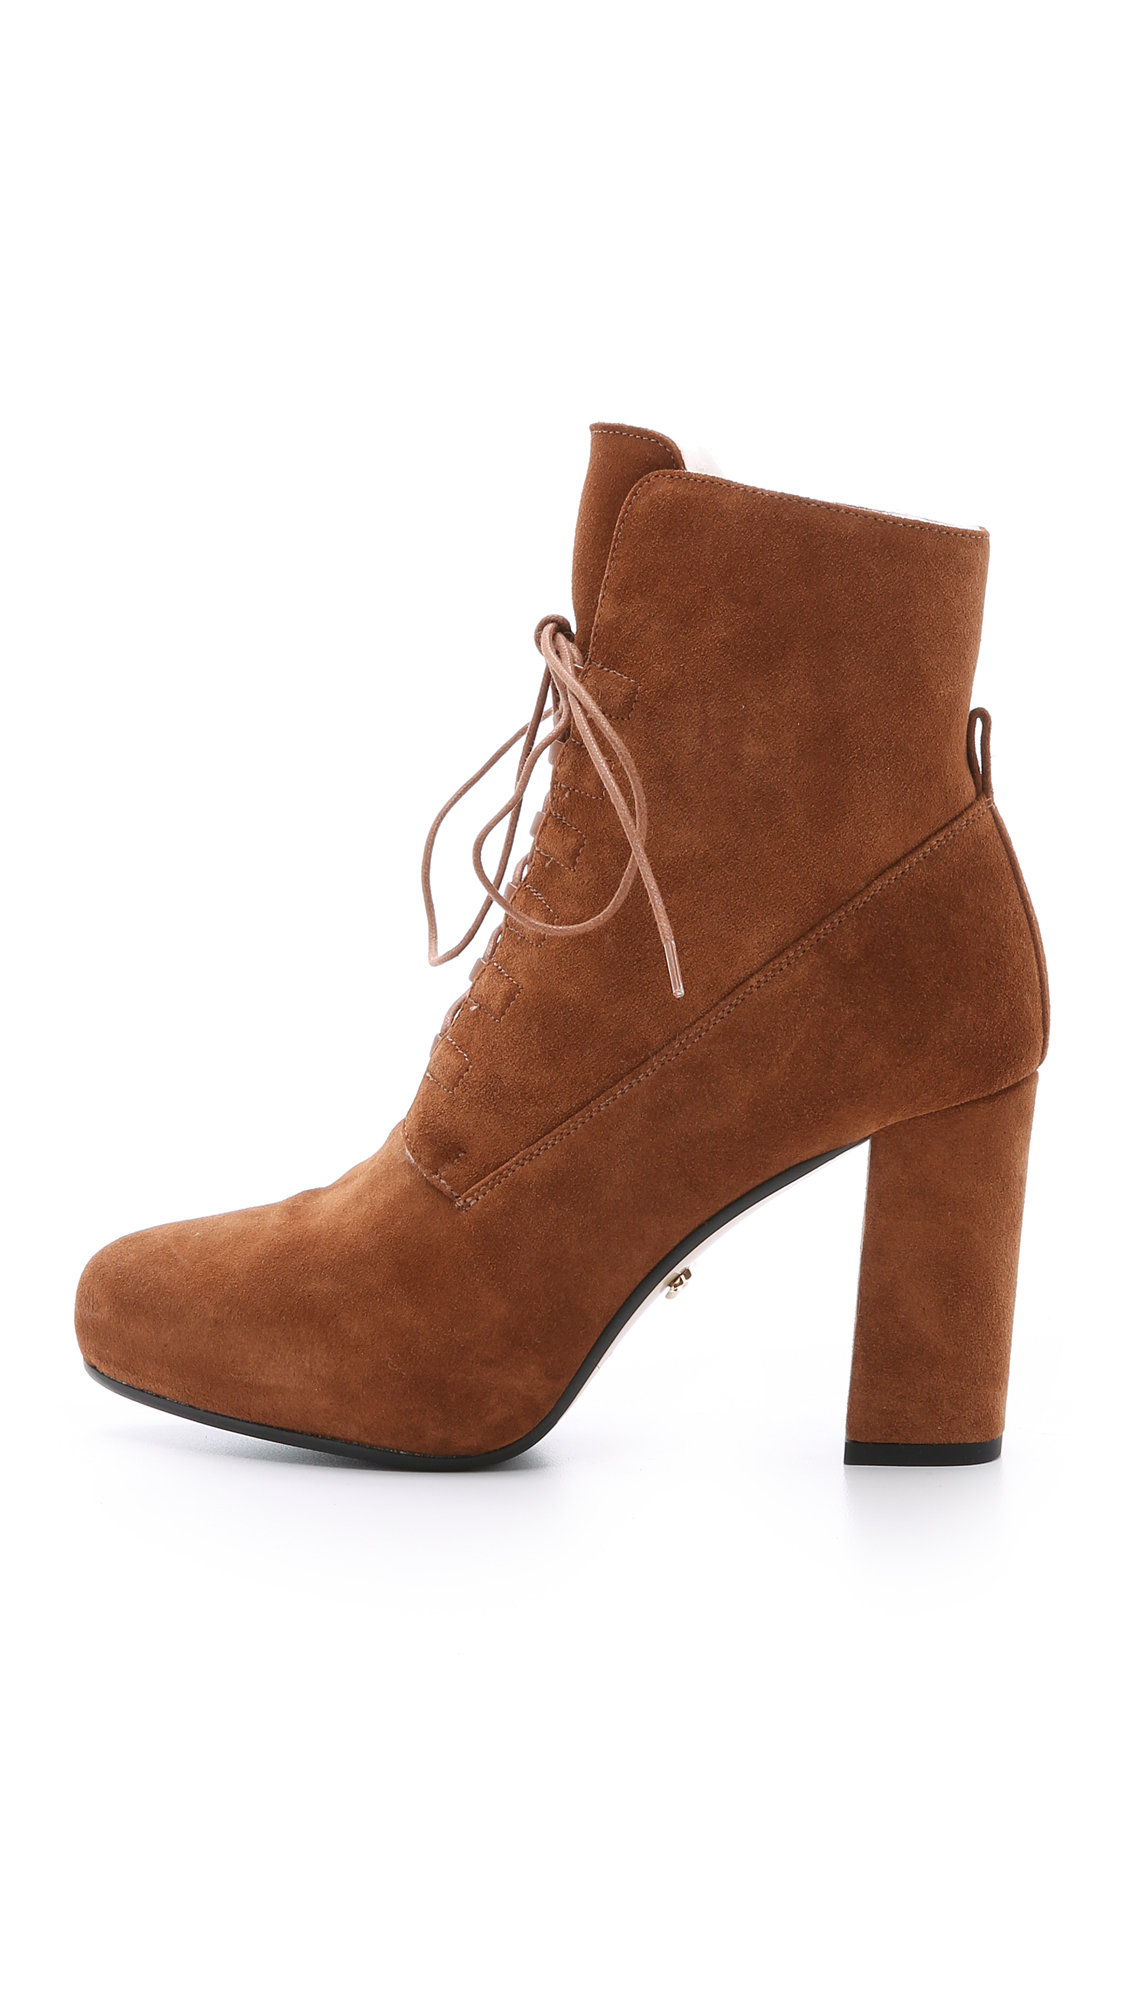 clearance brand new unisex Diane von Furstenberg Suede Lace-Up Ankle Boots free shipping best deals cheap price for nice online good selling online o81Vdr